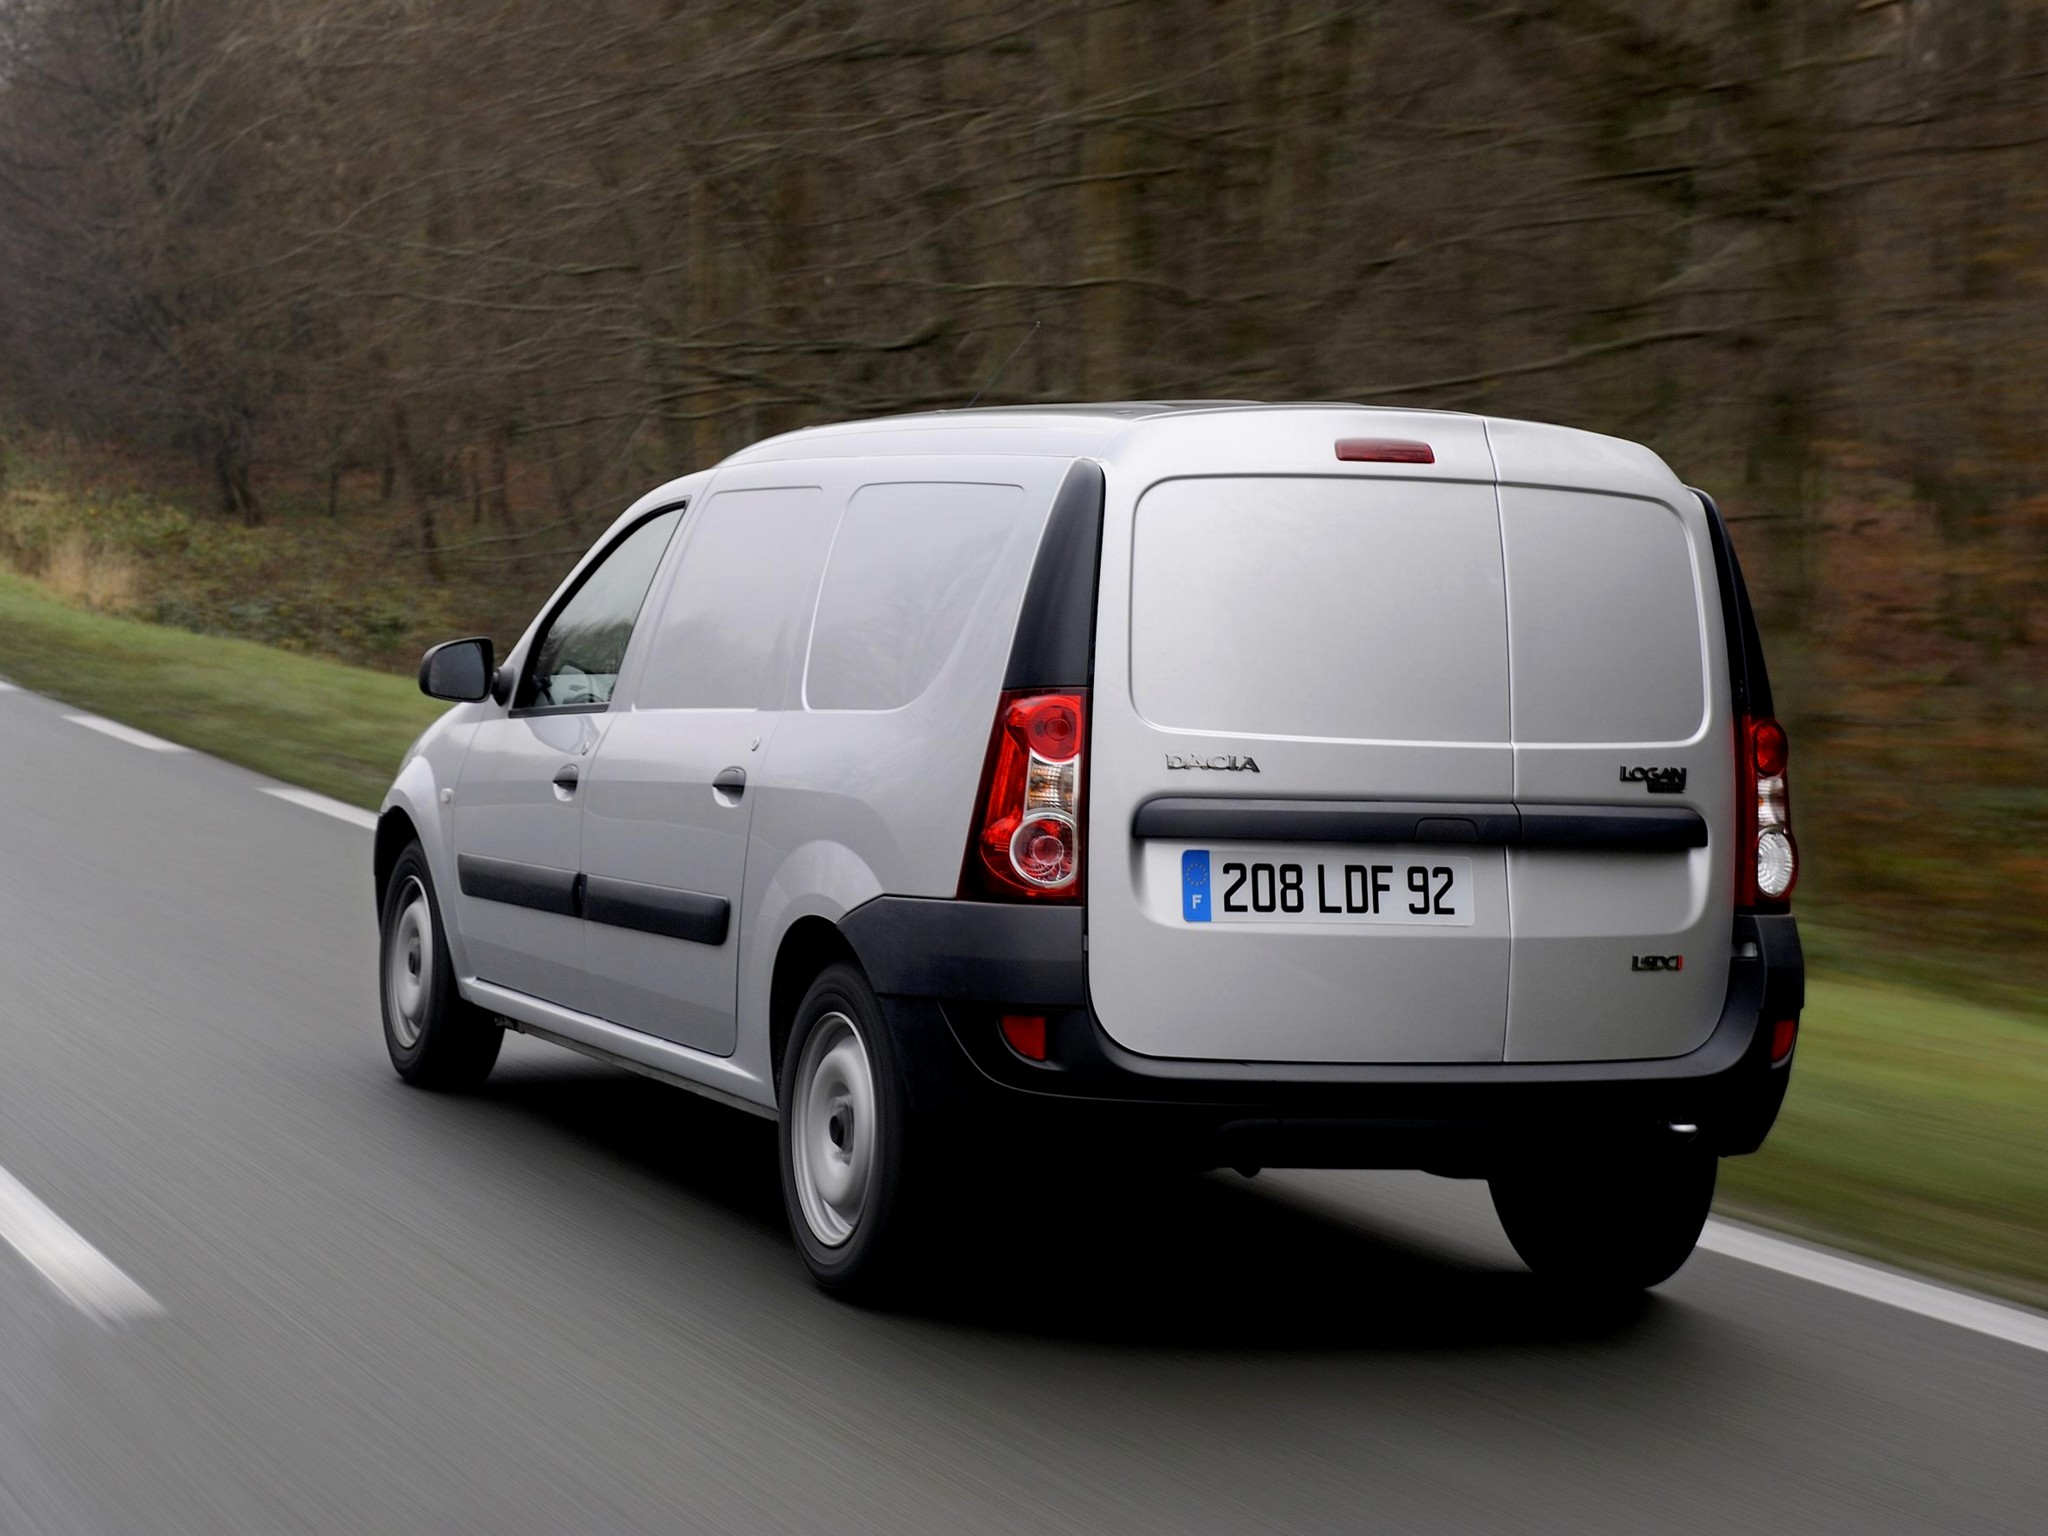 2007 Dacia Logan Van photo - 3